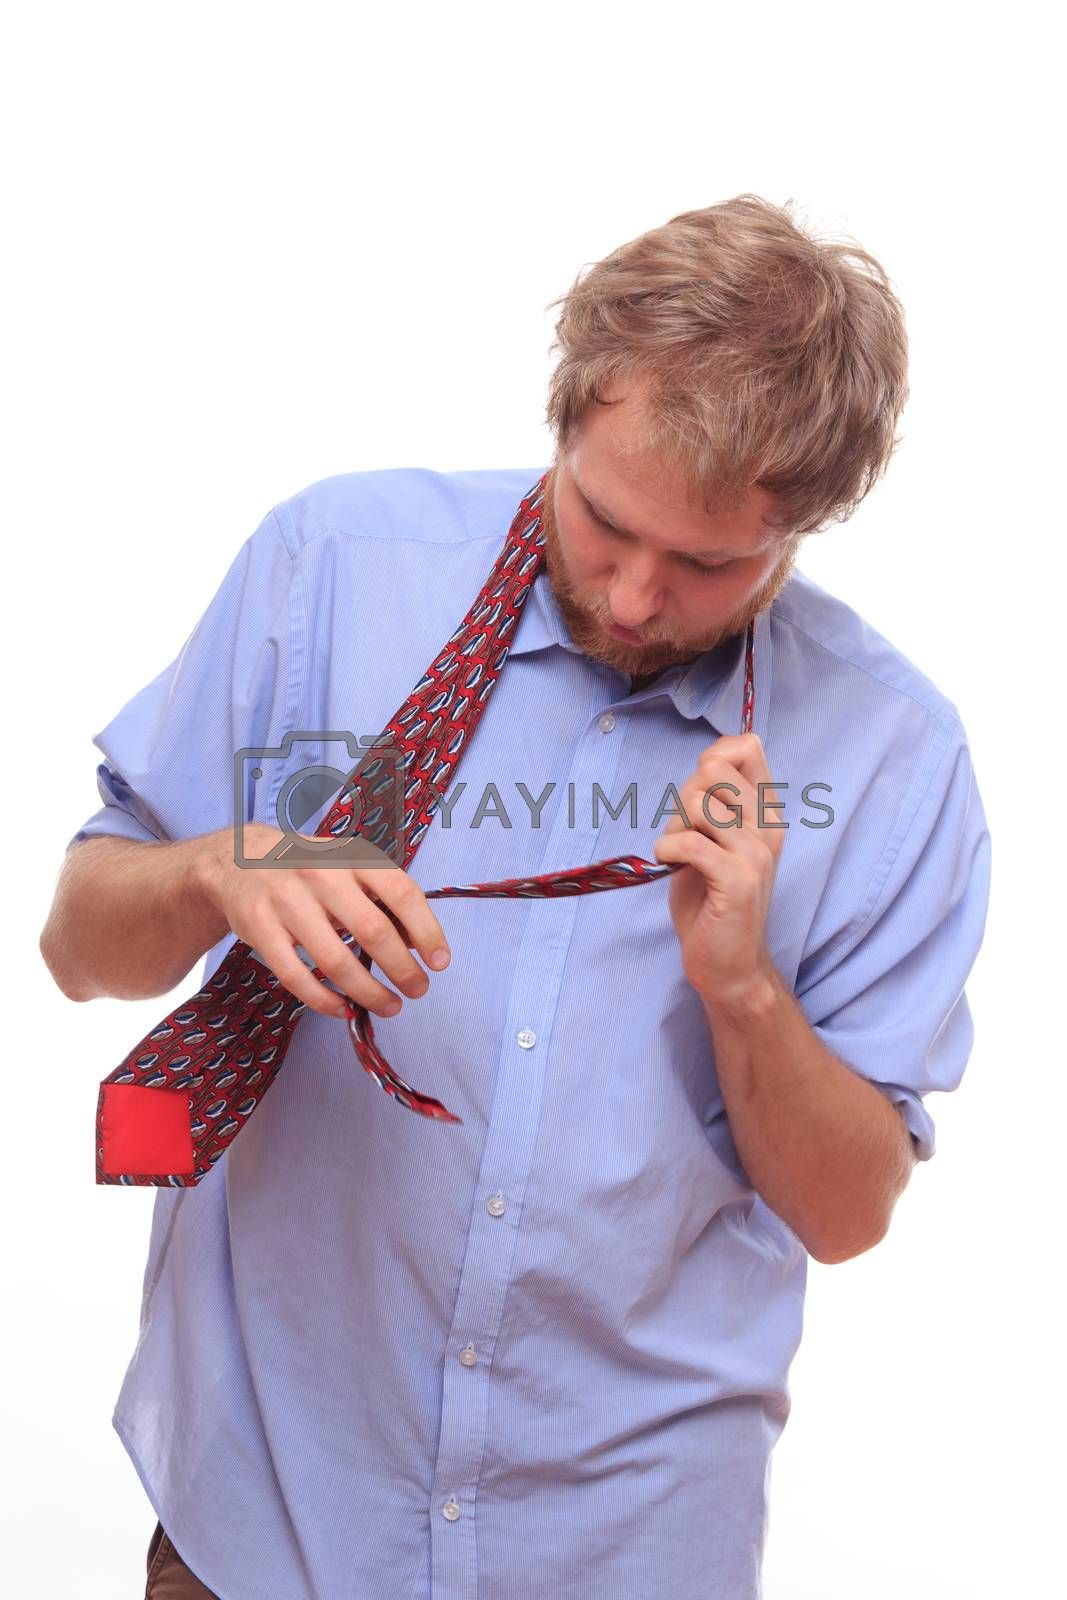 Man trying to bind a tie  by MichalLudwiczak